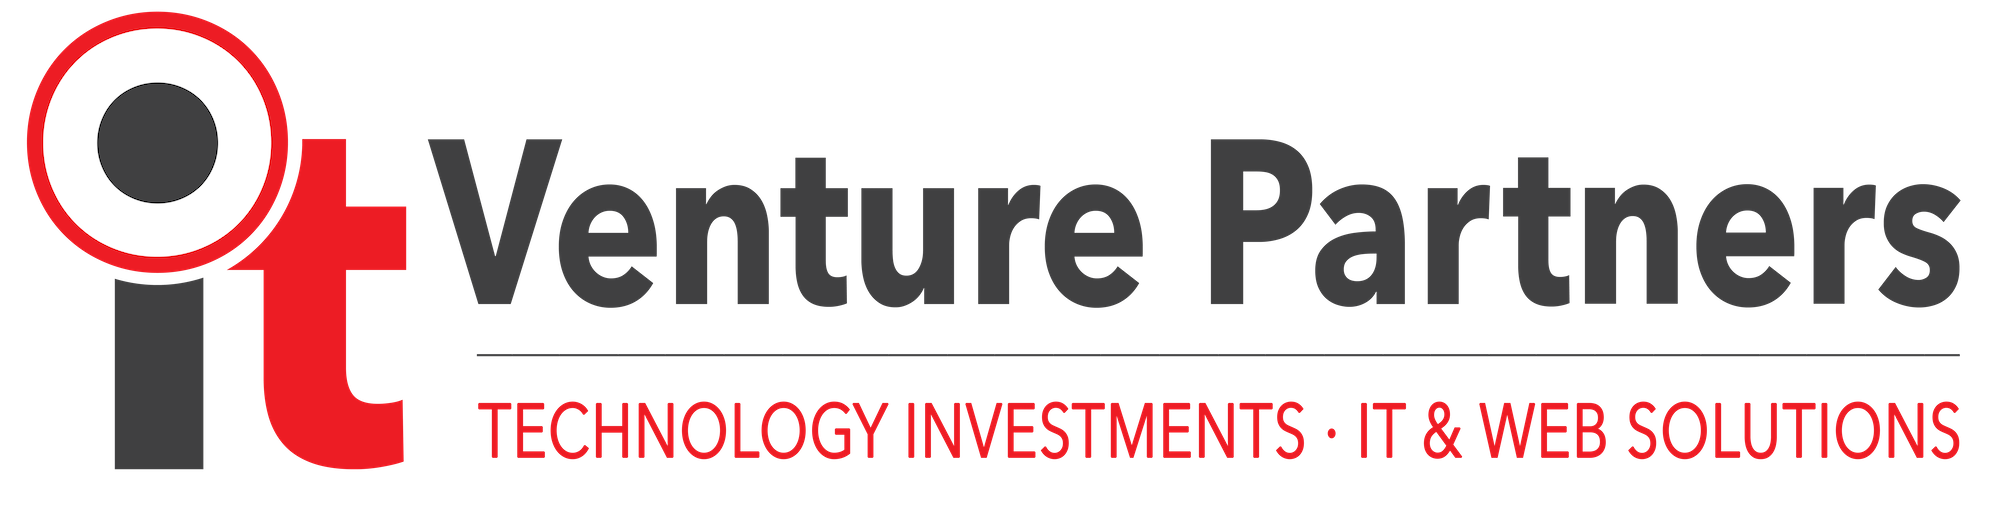 IT Venture Partners, Inc.